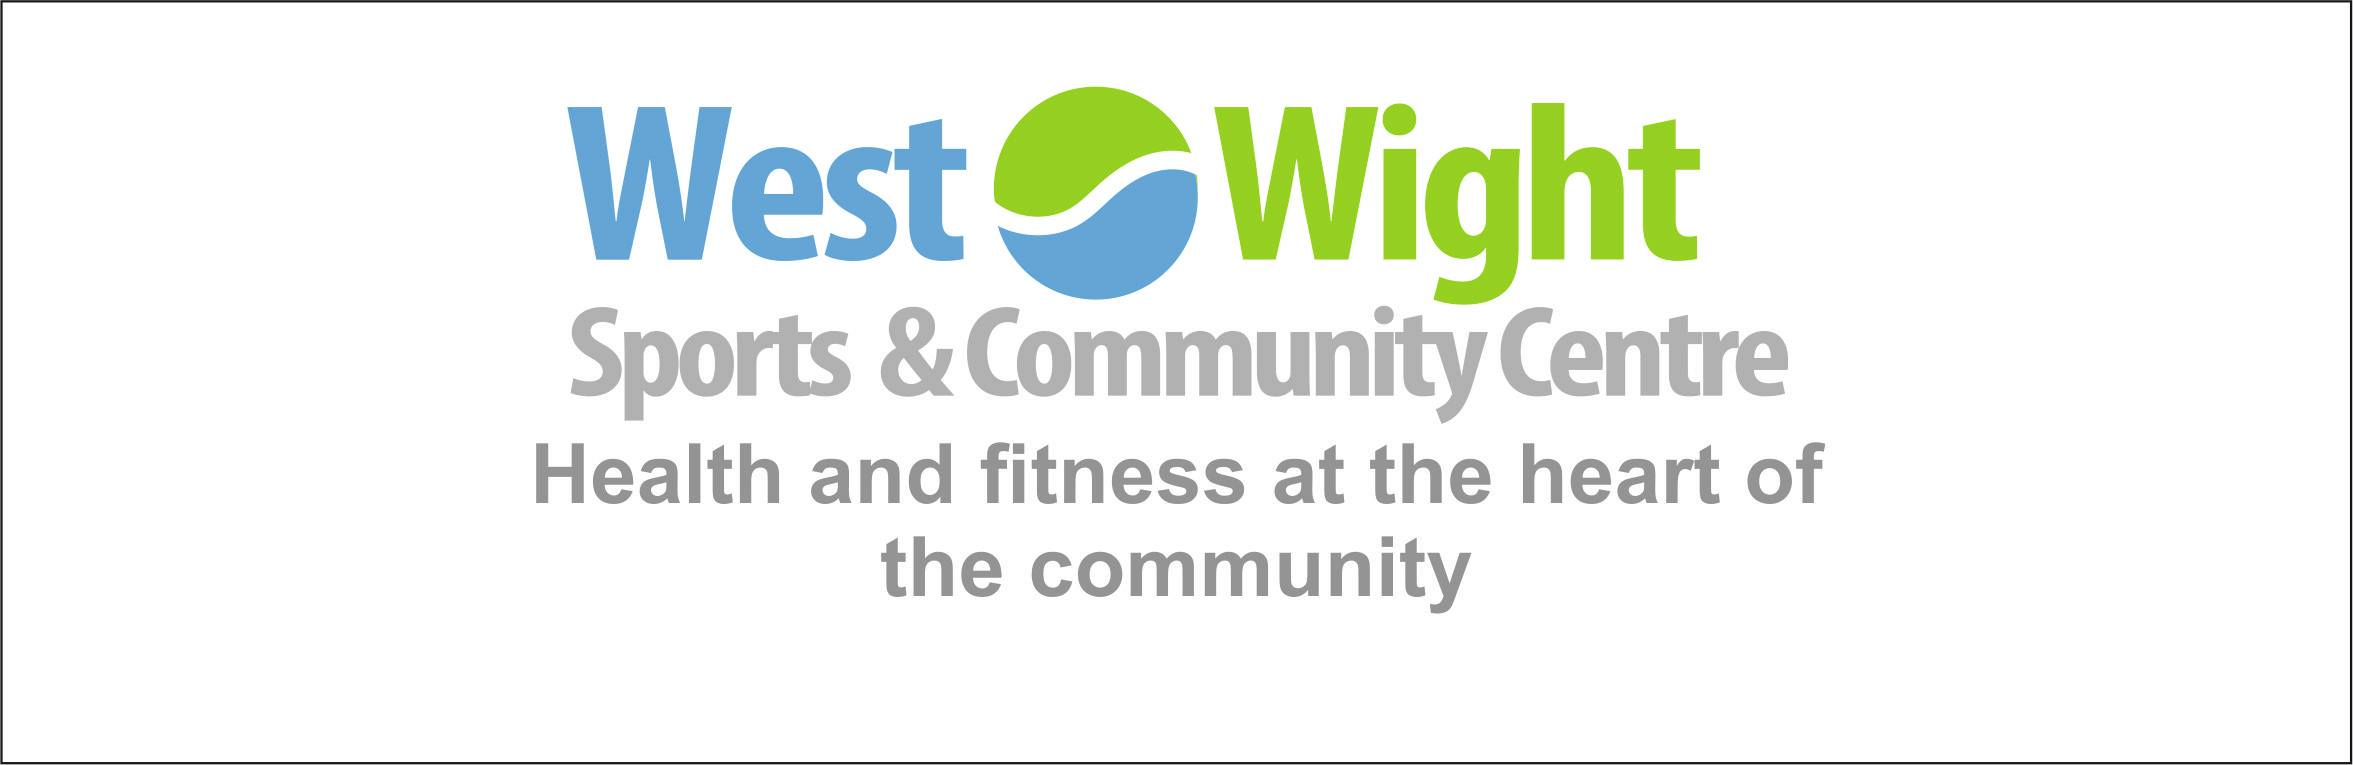 West Wight Sports and Community Centre's logo